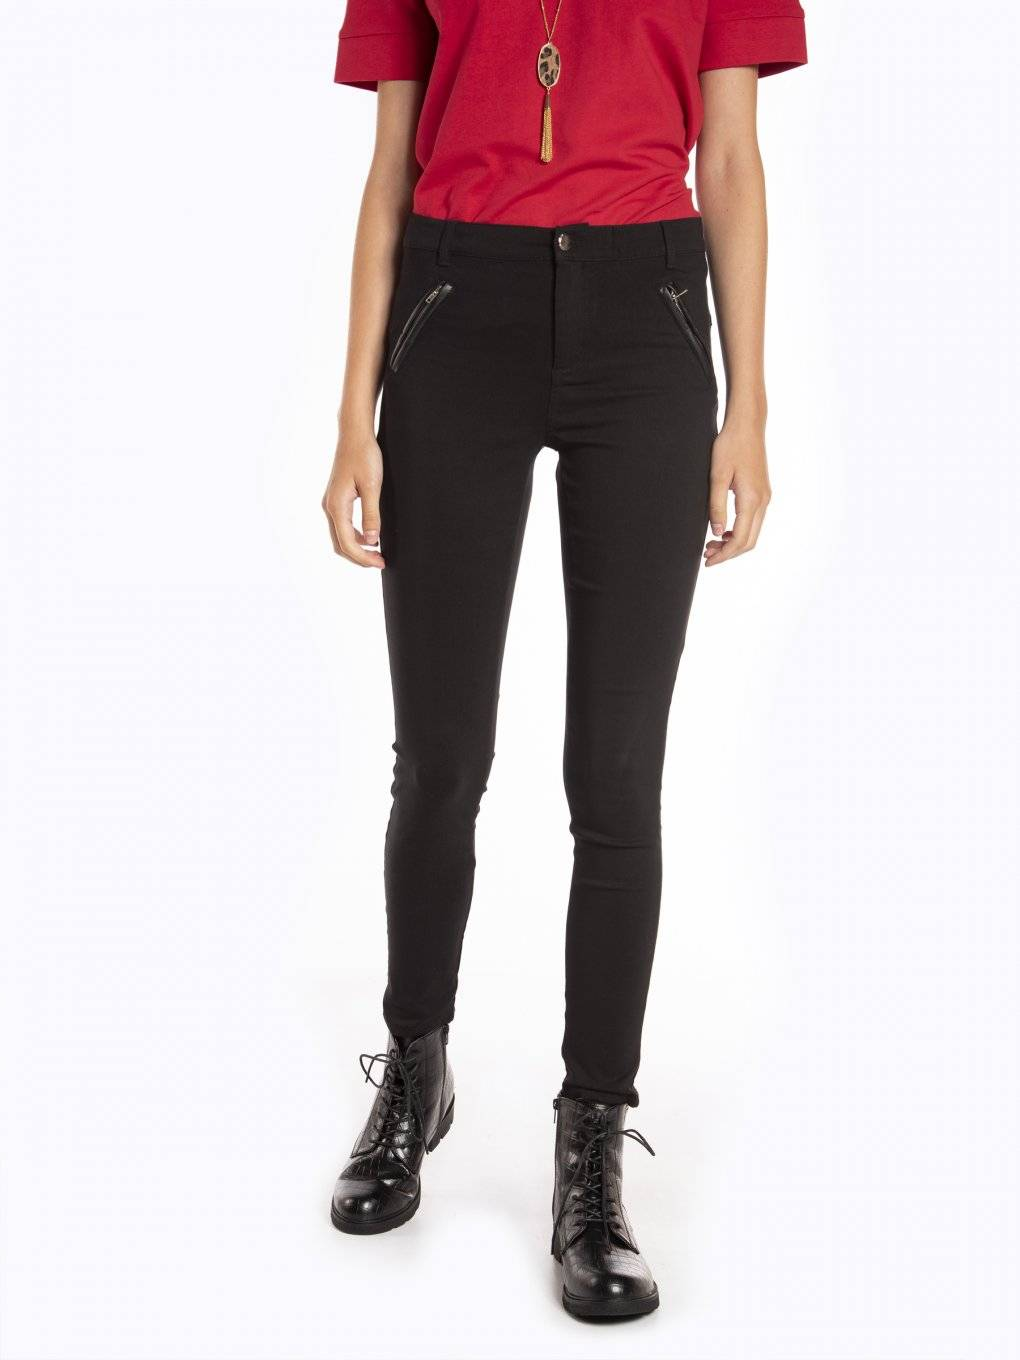 Stretchy skinny trousers with zippers